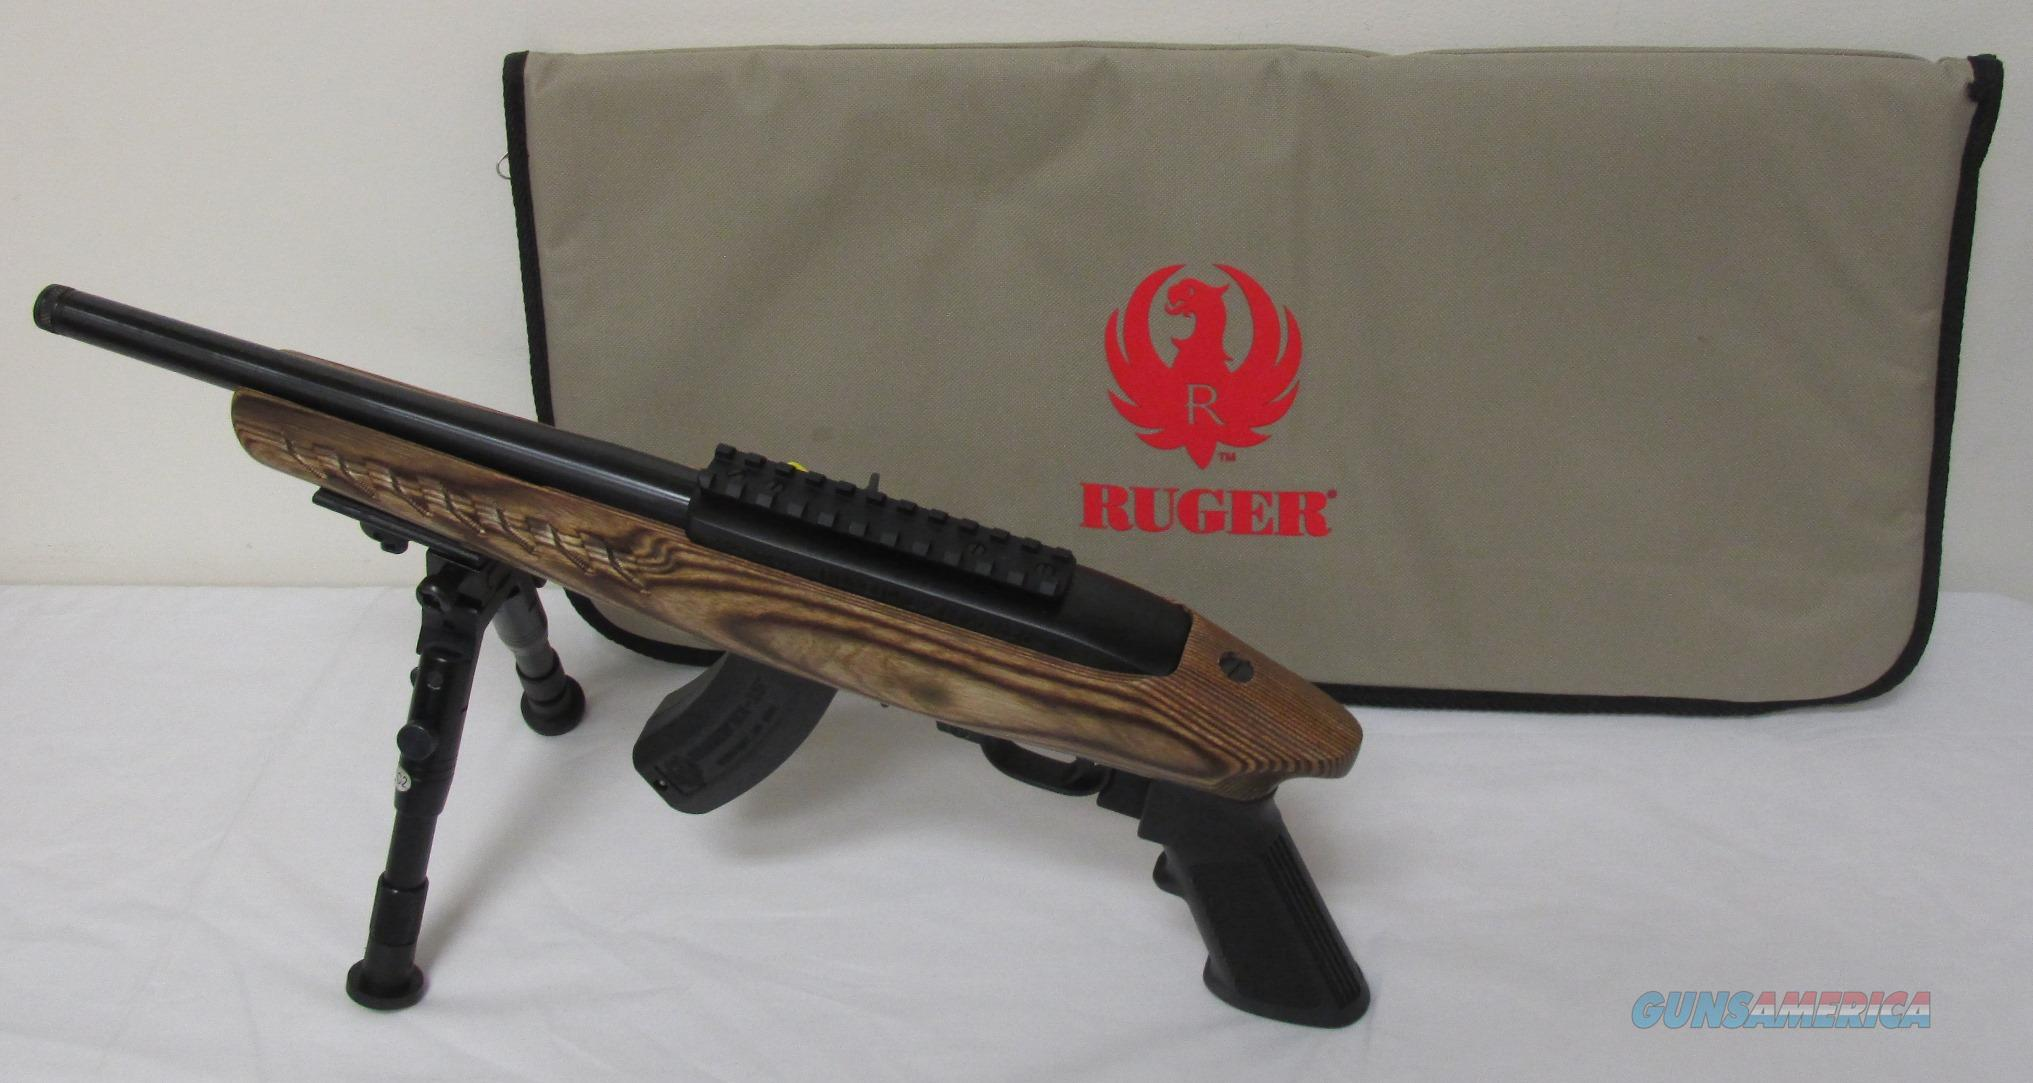 Ruger Charger 22LR New this Year! W/Bipod #4917  Guns > Pistols > Ruger Semi-Auto Pistols > Charger Series